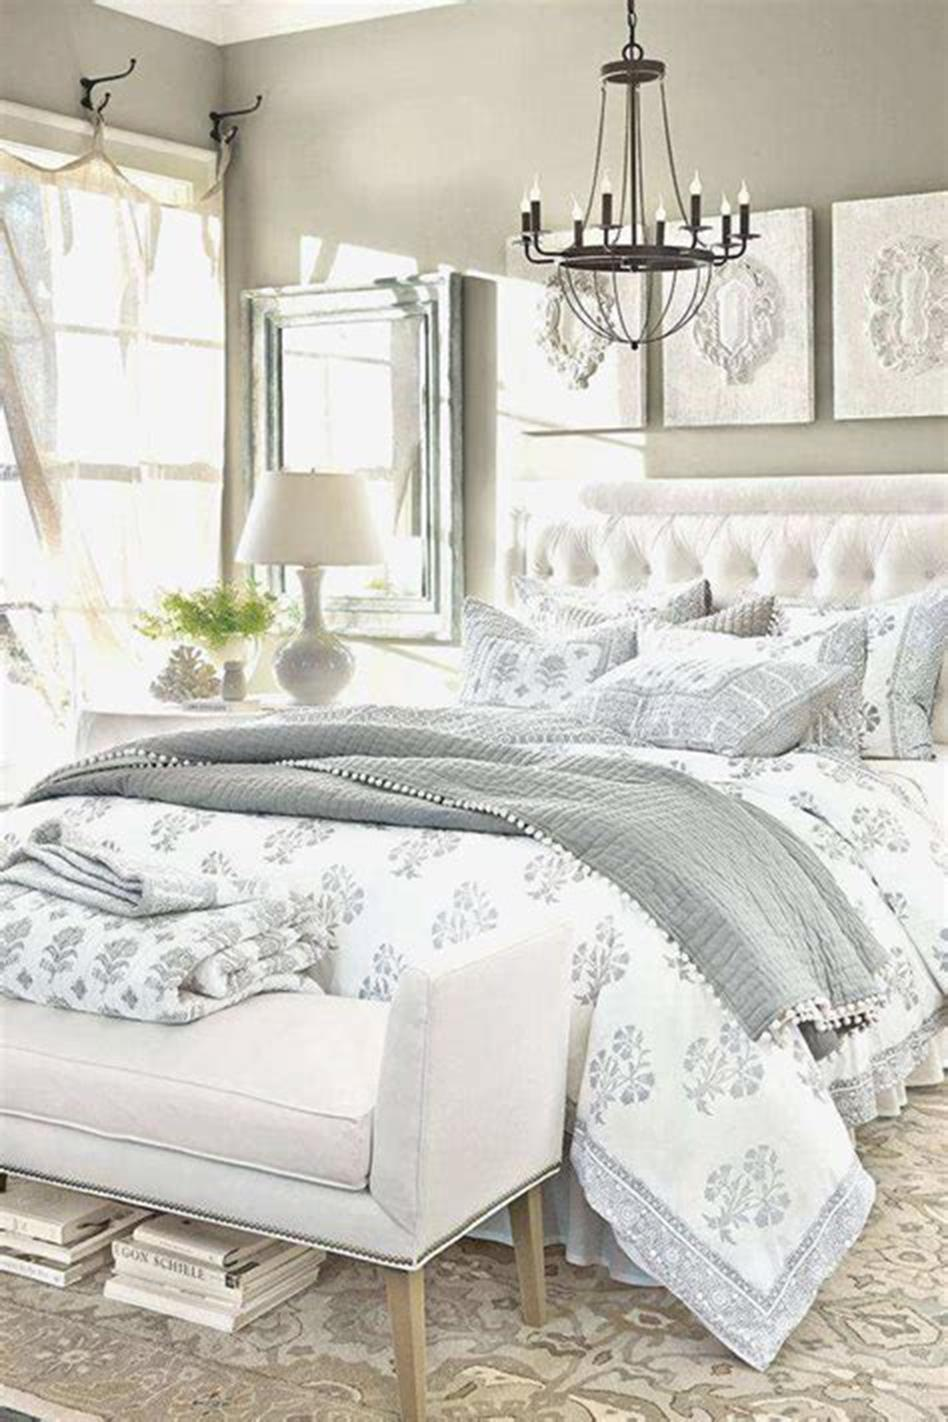 45 Beautiful Master Bedroom Bedding Ideas 2019 32 ...